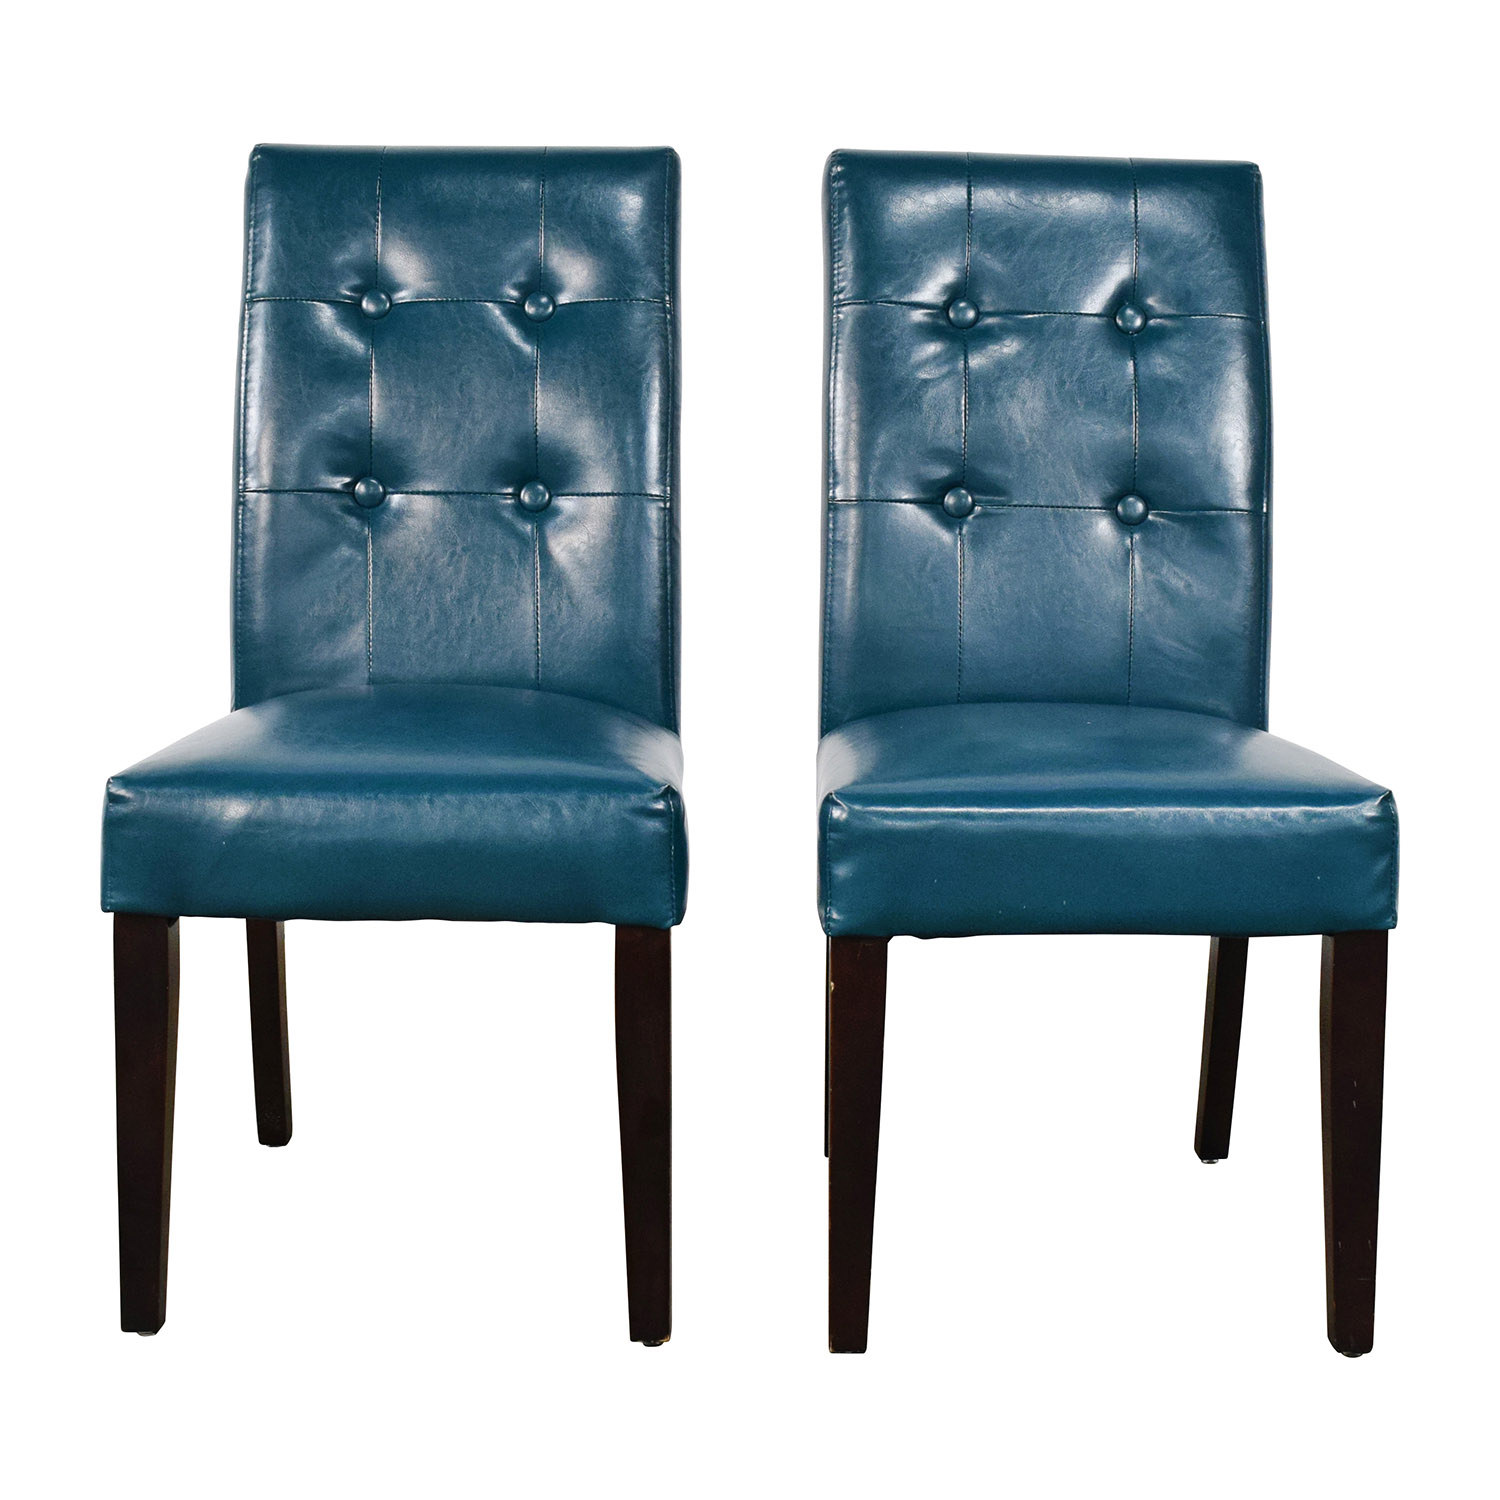 76 Off Pier 1 Pier 1 Imports Mason Collection Teal Dining Chairs